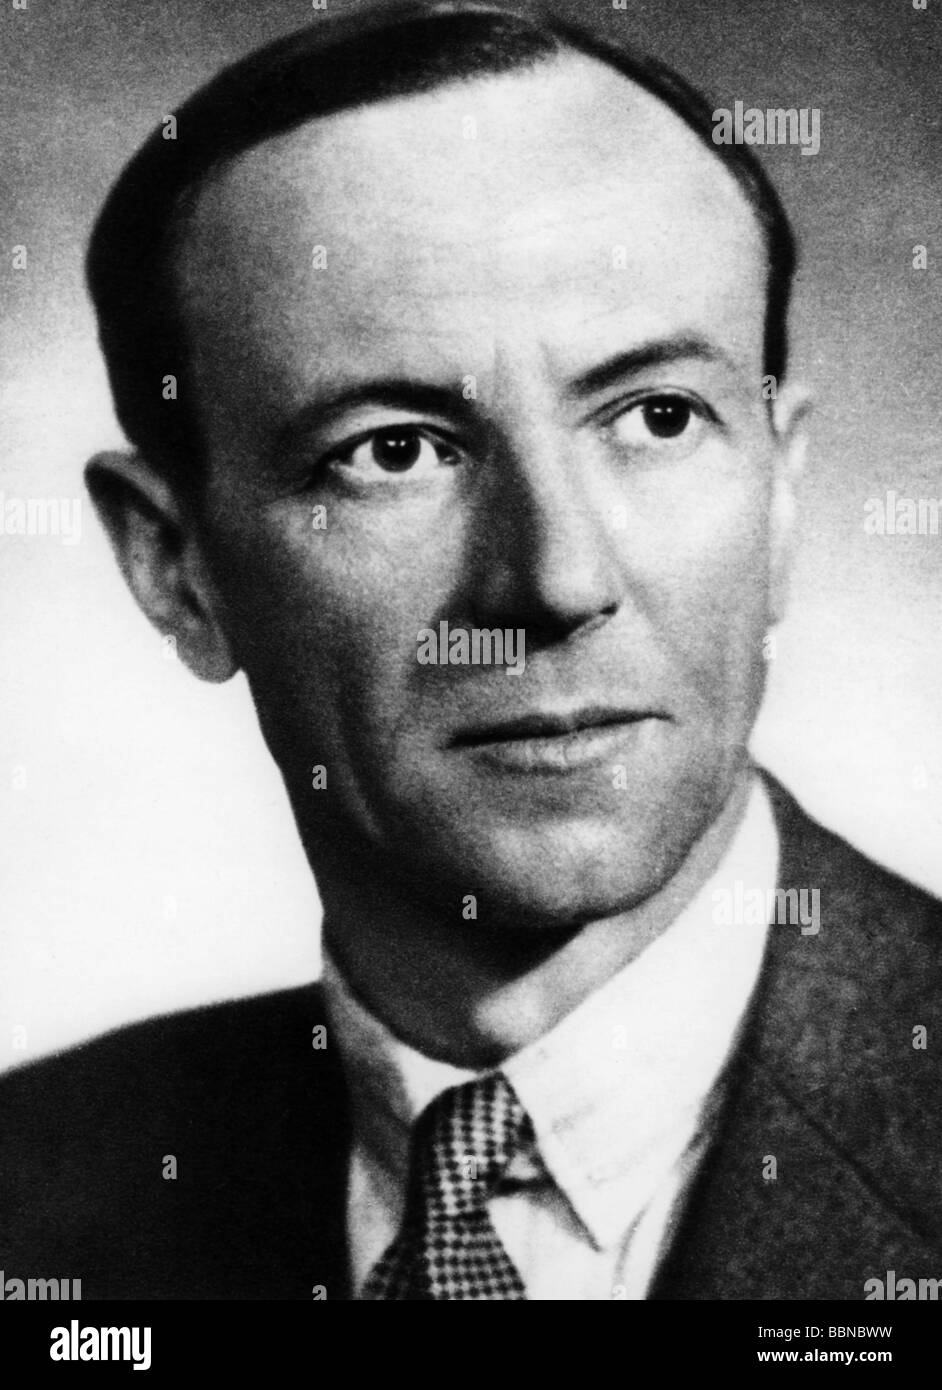 Chadwick, James, 20.10.1891 - 24.7.1974, British physicist, portrait, , Additional-Rights-Clearances-NA - Stock Image